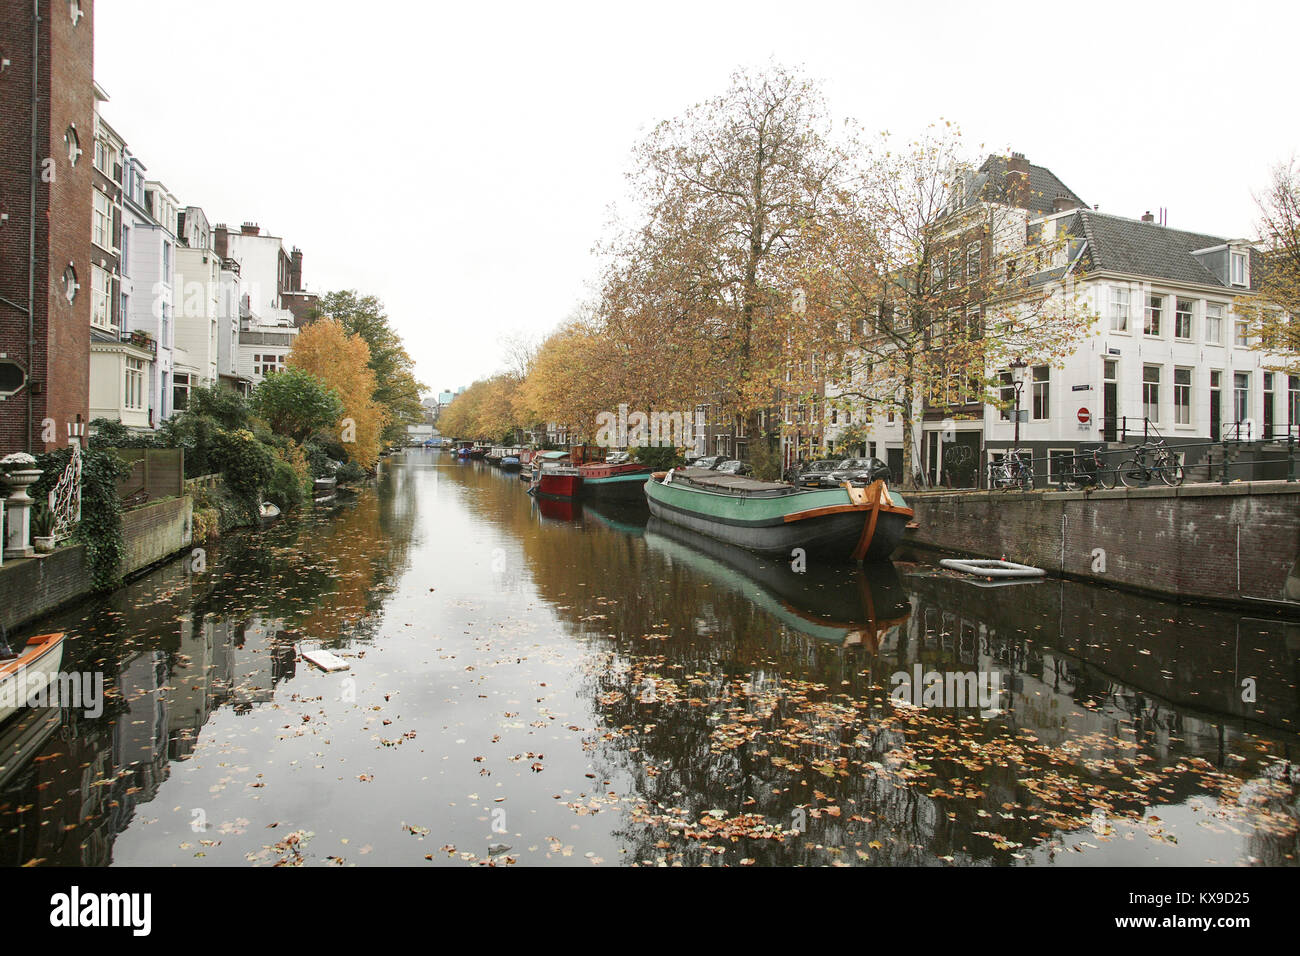 Lijnbaansgracht with houseboats at the quays 2007 - Stock Image